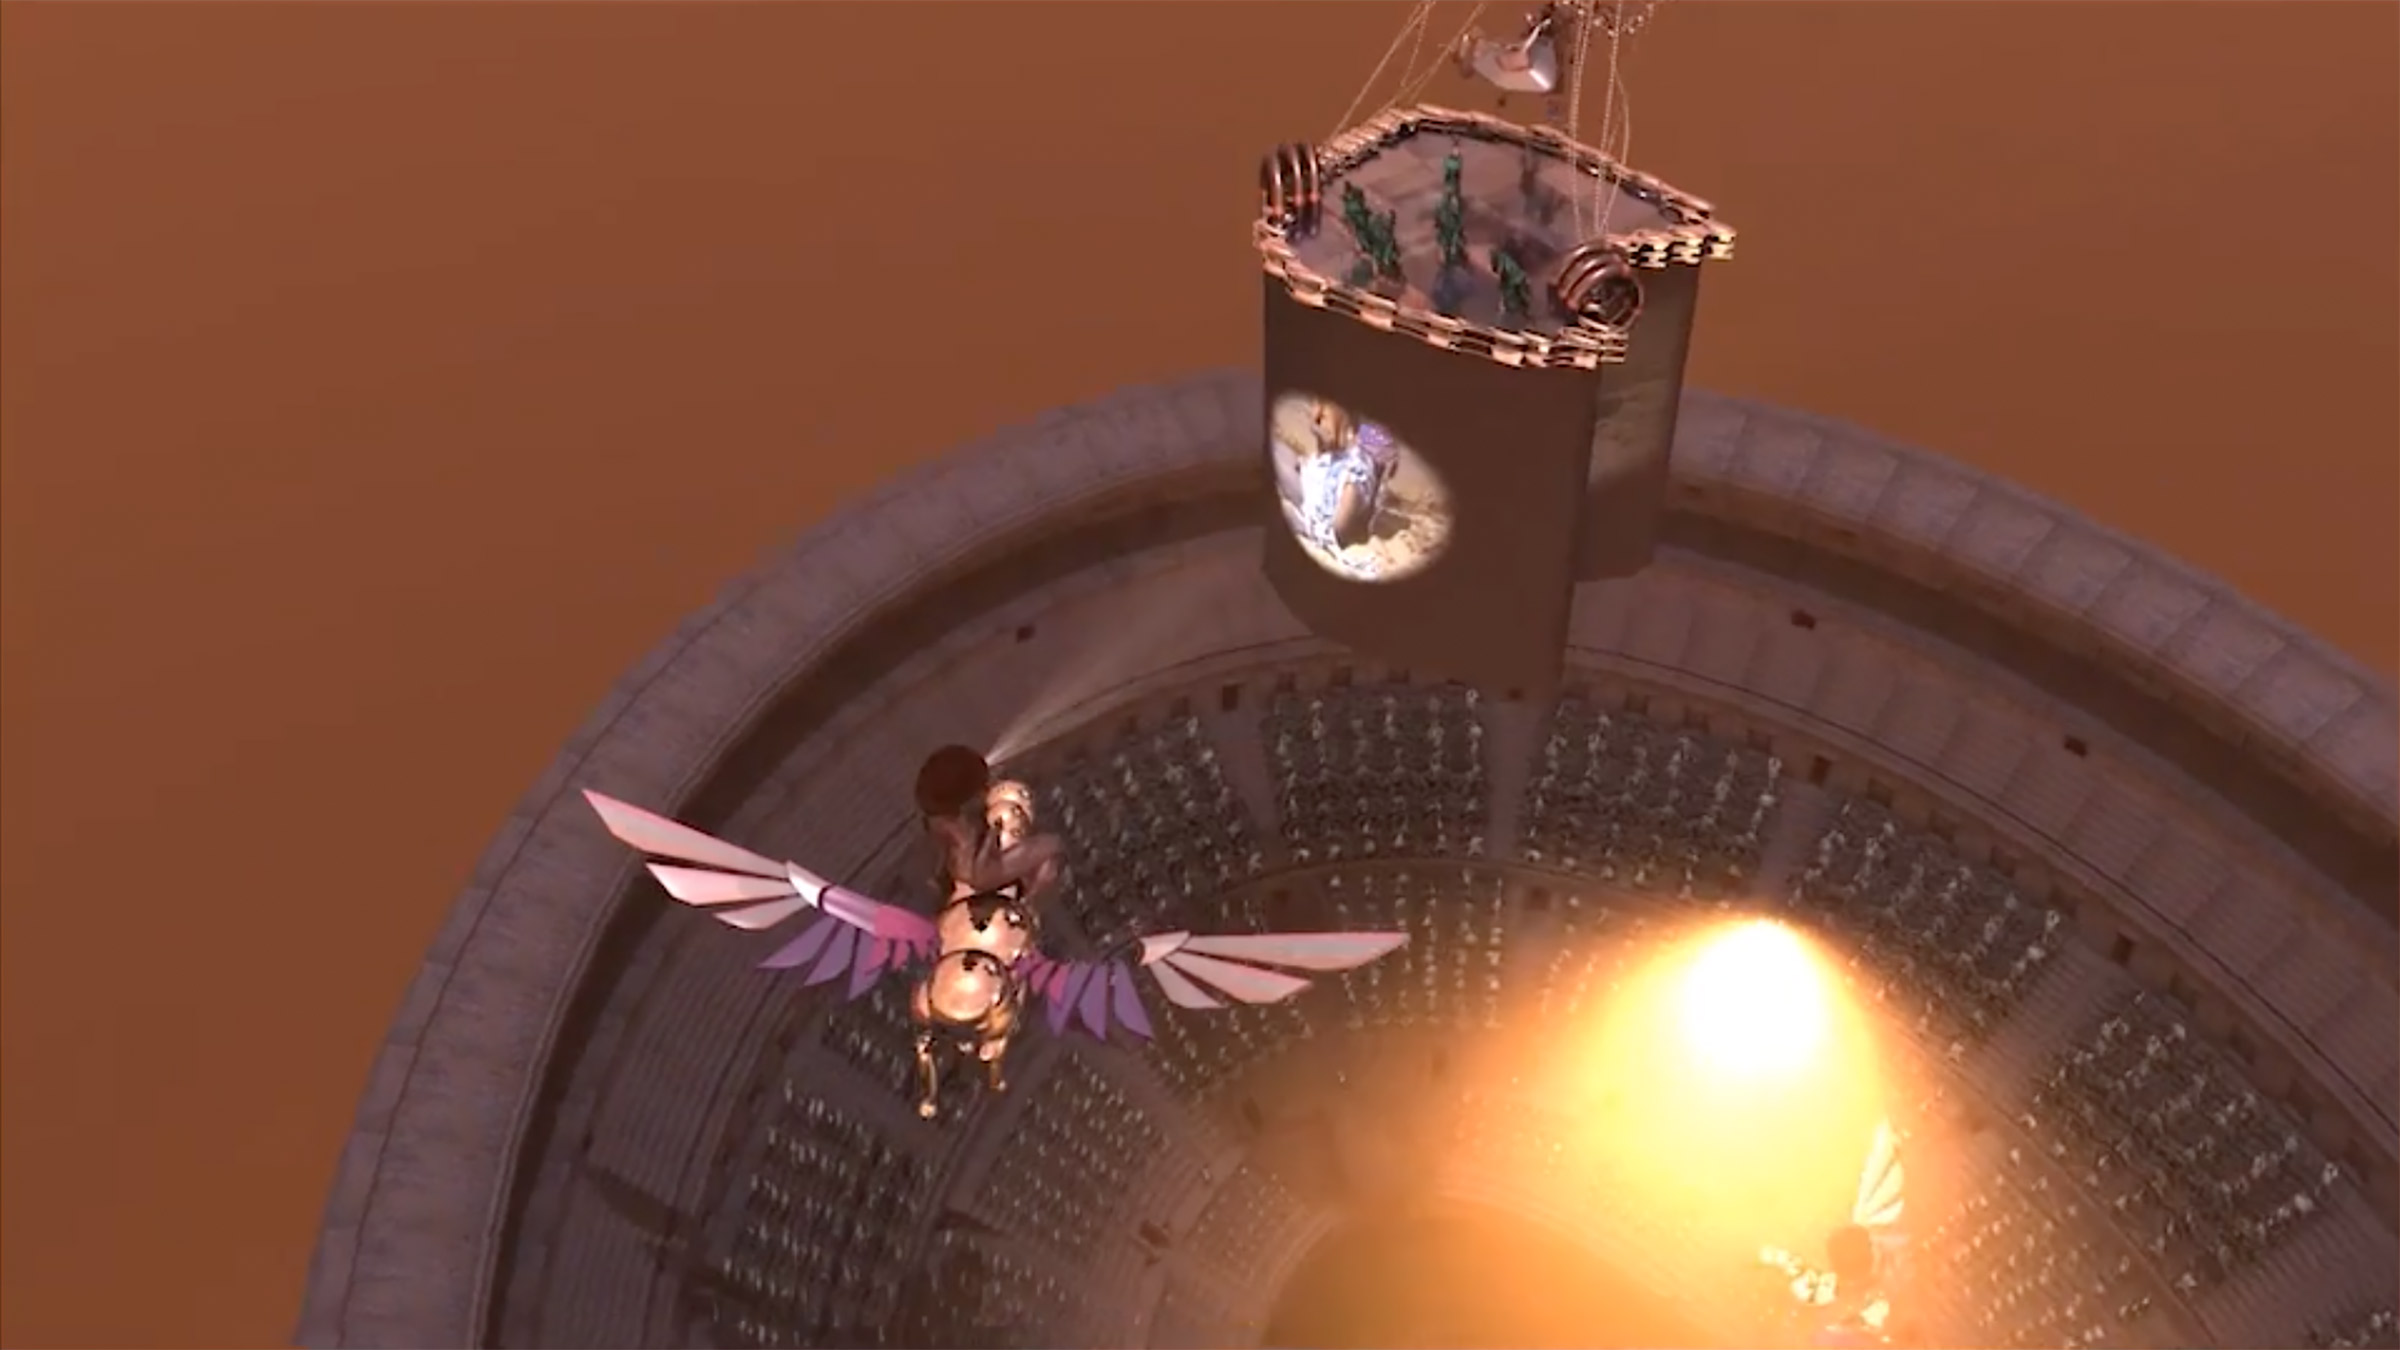 Computer generated screenshot of a unicorn flying over what looks to be a stadium. There is a woman riding the unicorn.